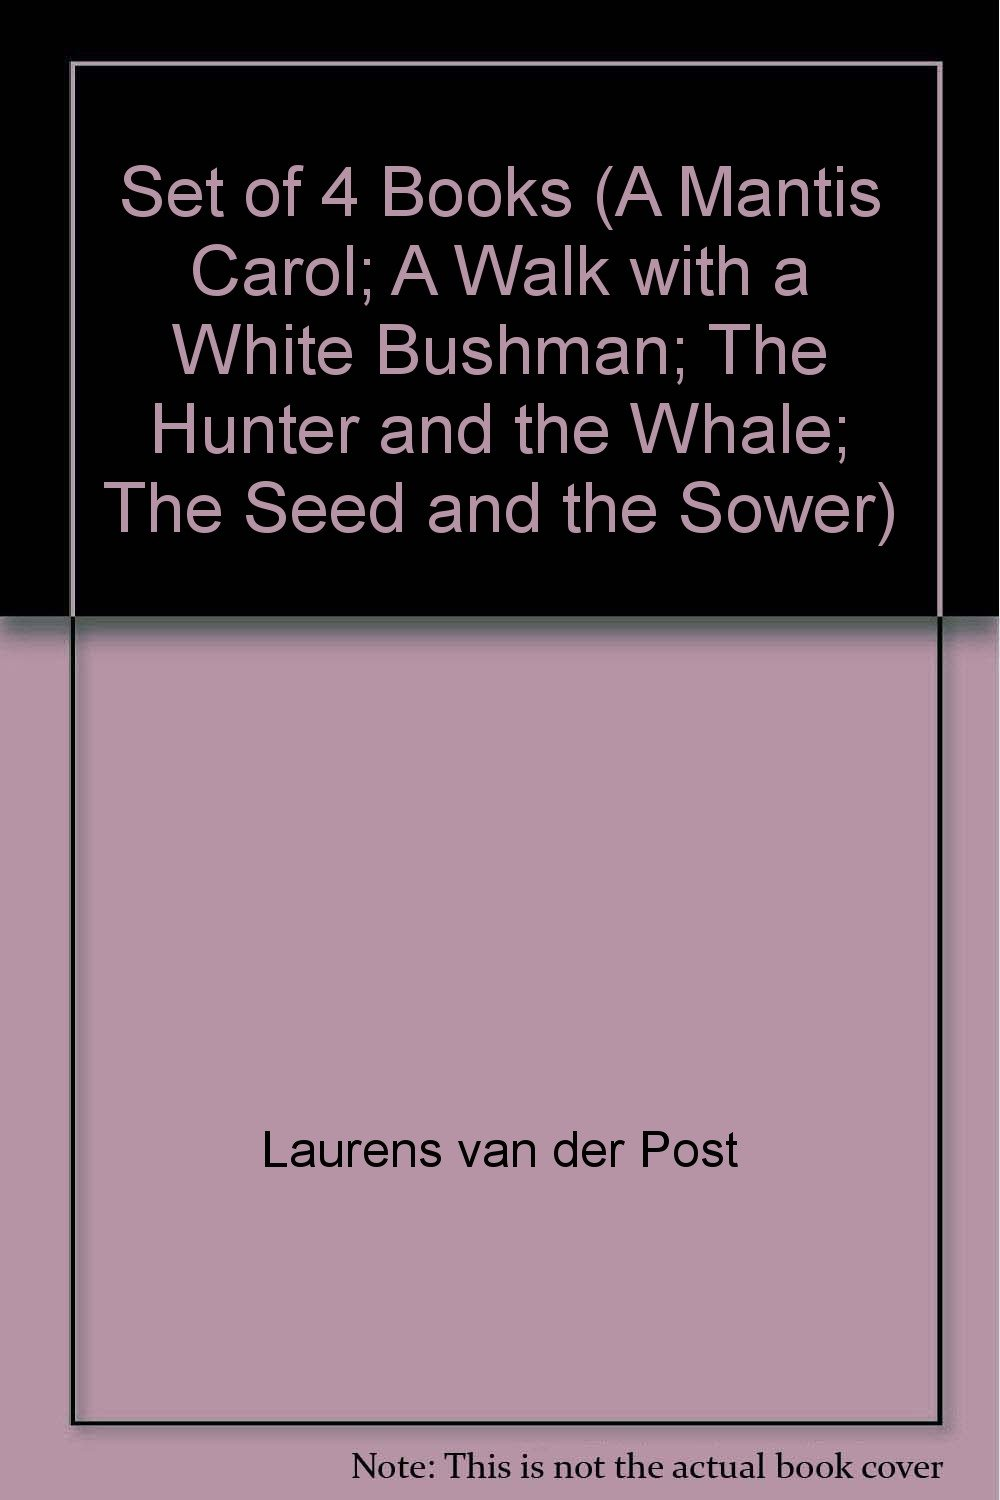 Set of 4 Books (A Mantis Carol; A Walk with a White Bushman; The Hunter and  the Whale; The Seed and the Sower): Laurens van der Post: Amazon.com: Books